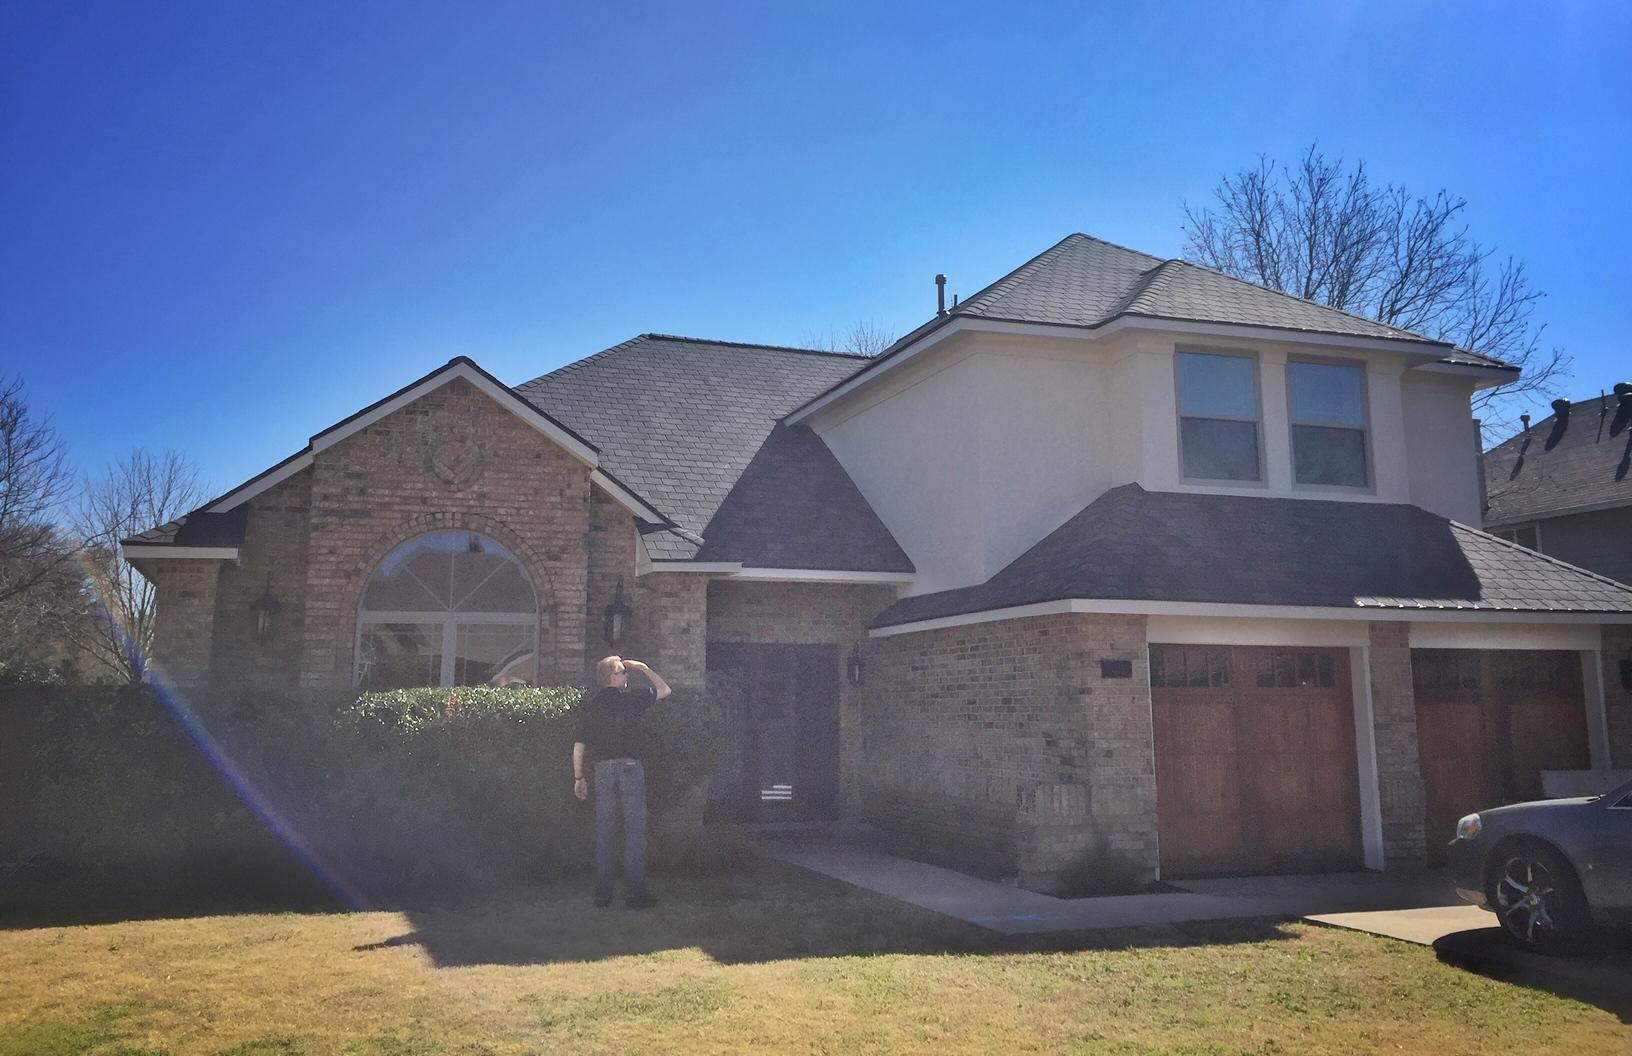 Roof Replacement in Grand Prairie, TX - After Photo